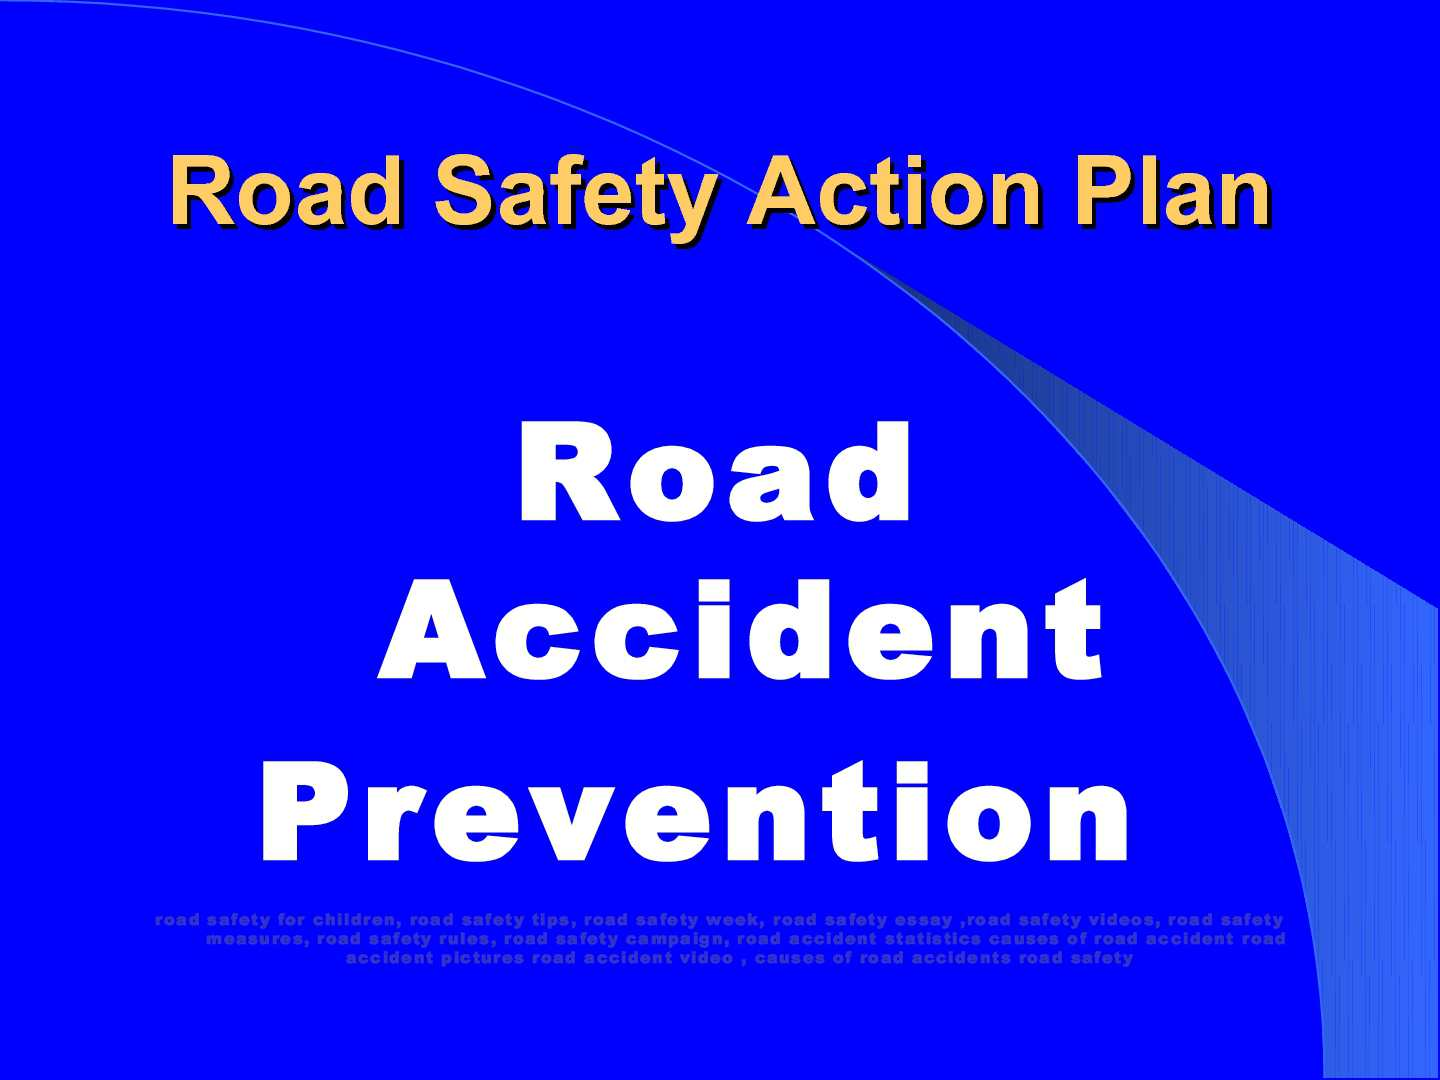 essay on road safety calam eacute o how to prevent road accidents  calam eacute o how to prevent road accidents powerpoint presentation calameacuteo how to prevent road accidents